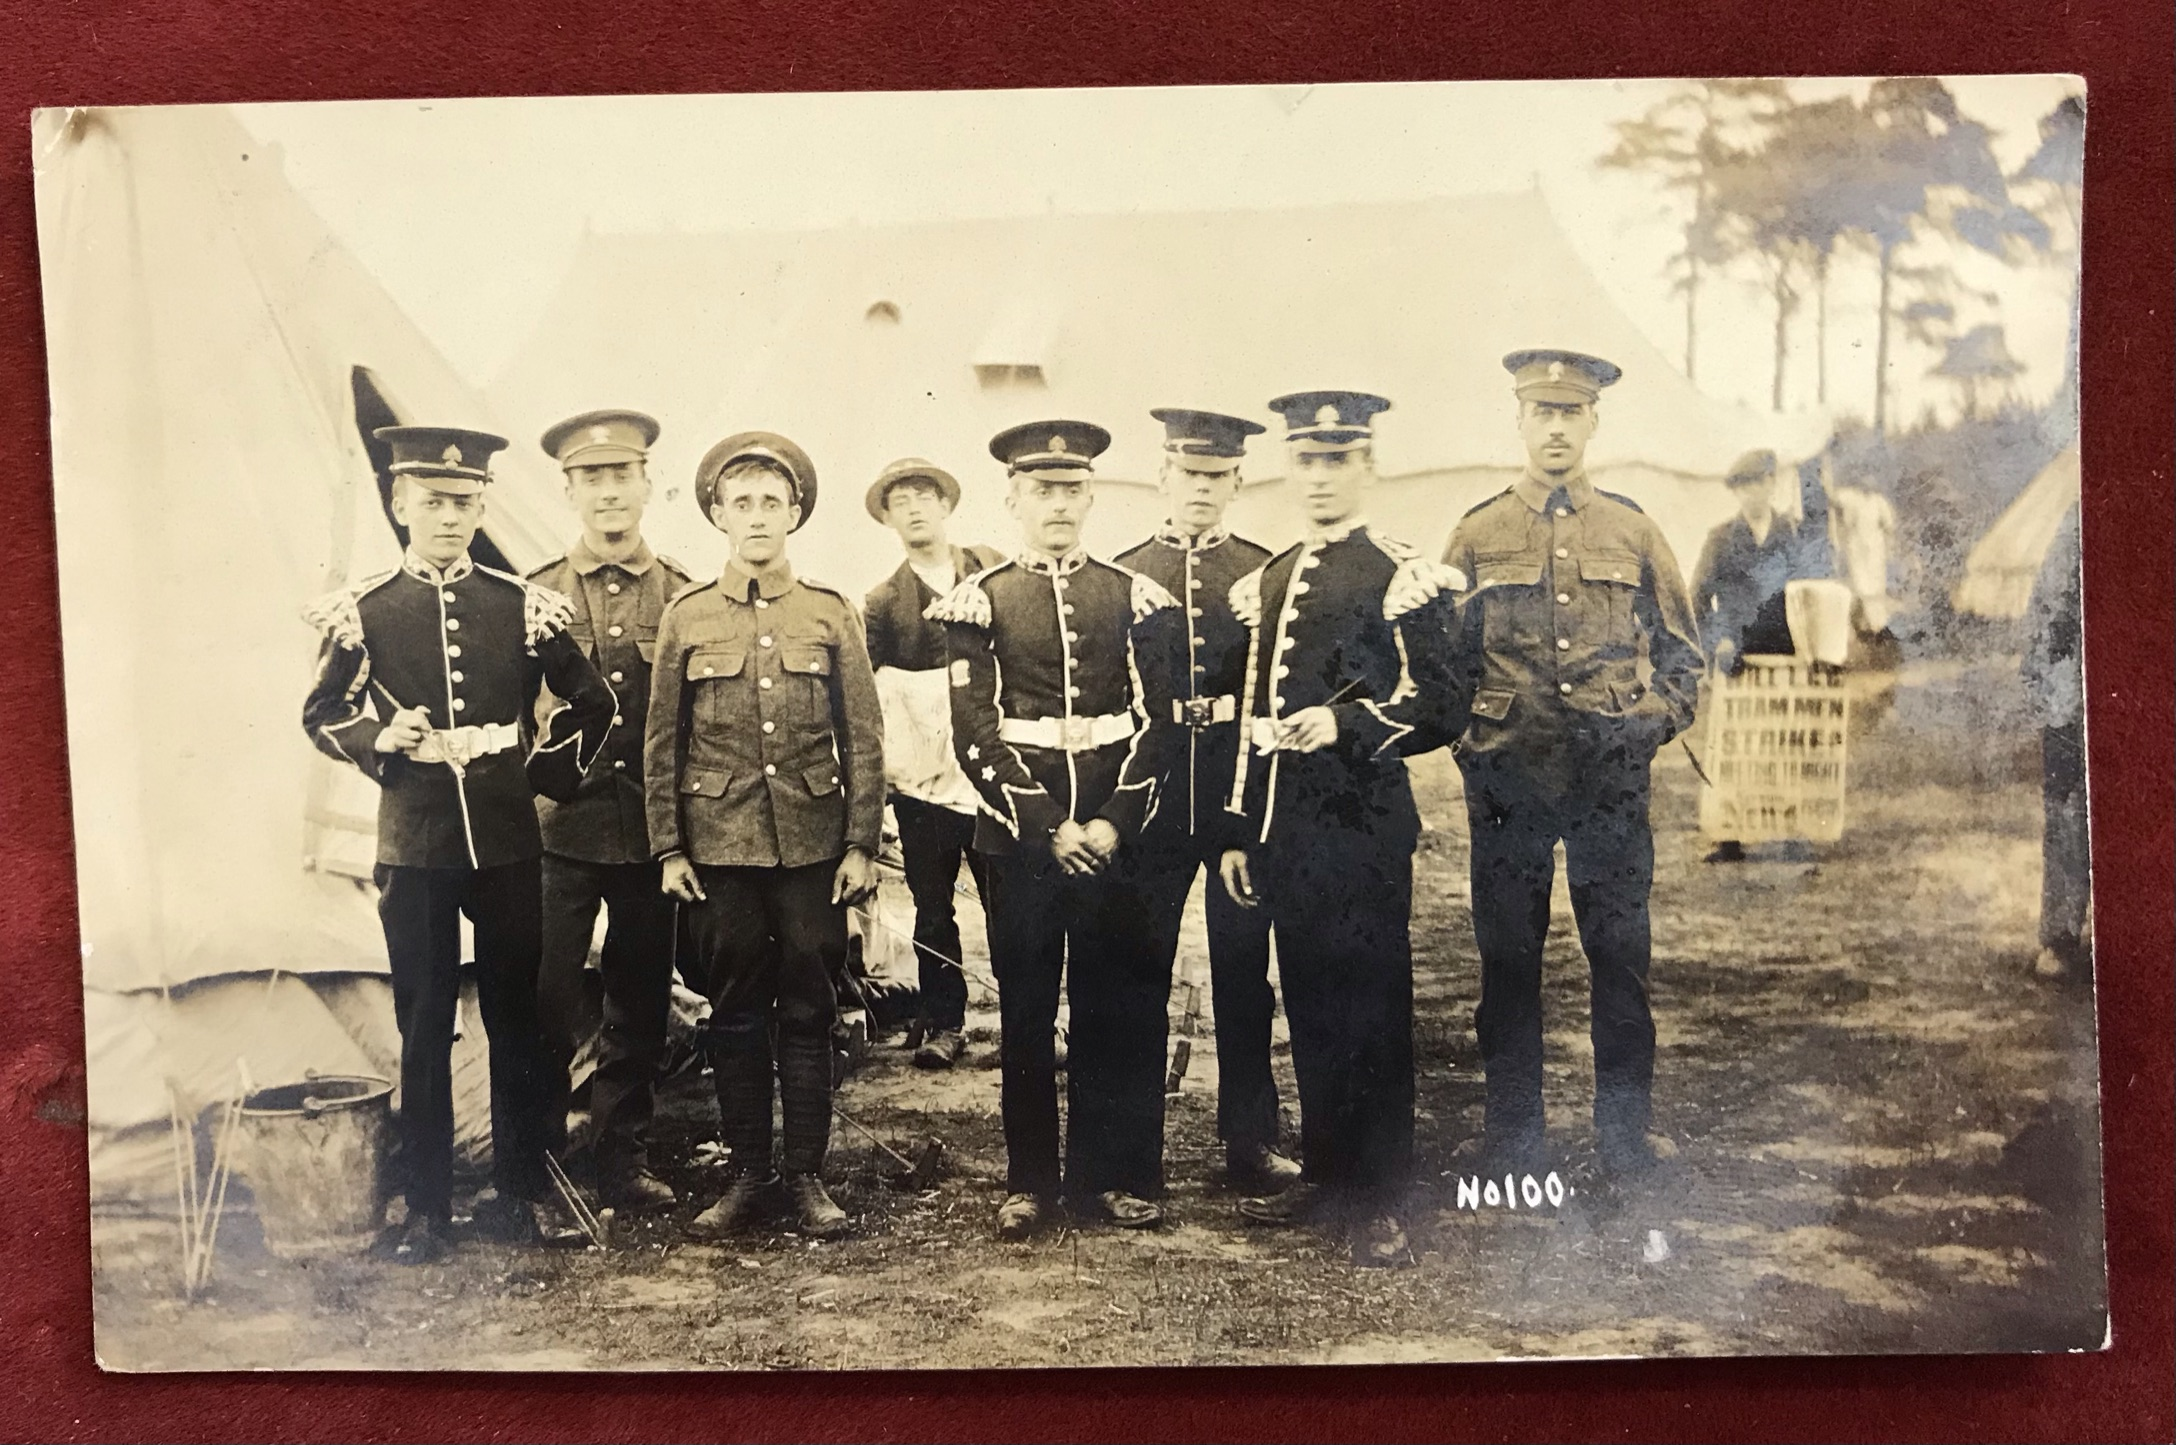 Royal Fusiliers Bandmen RP Card showing the men in camp, News bulletin in the background Will L.G.G,